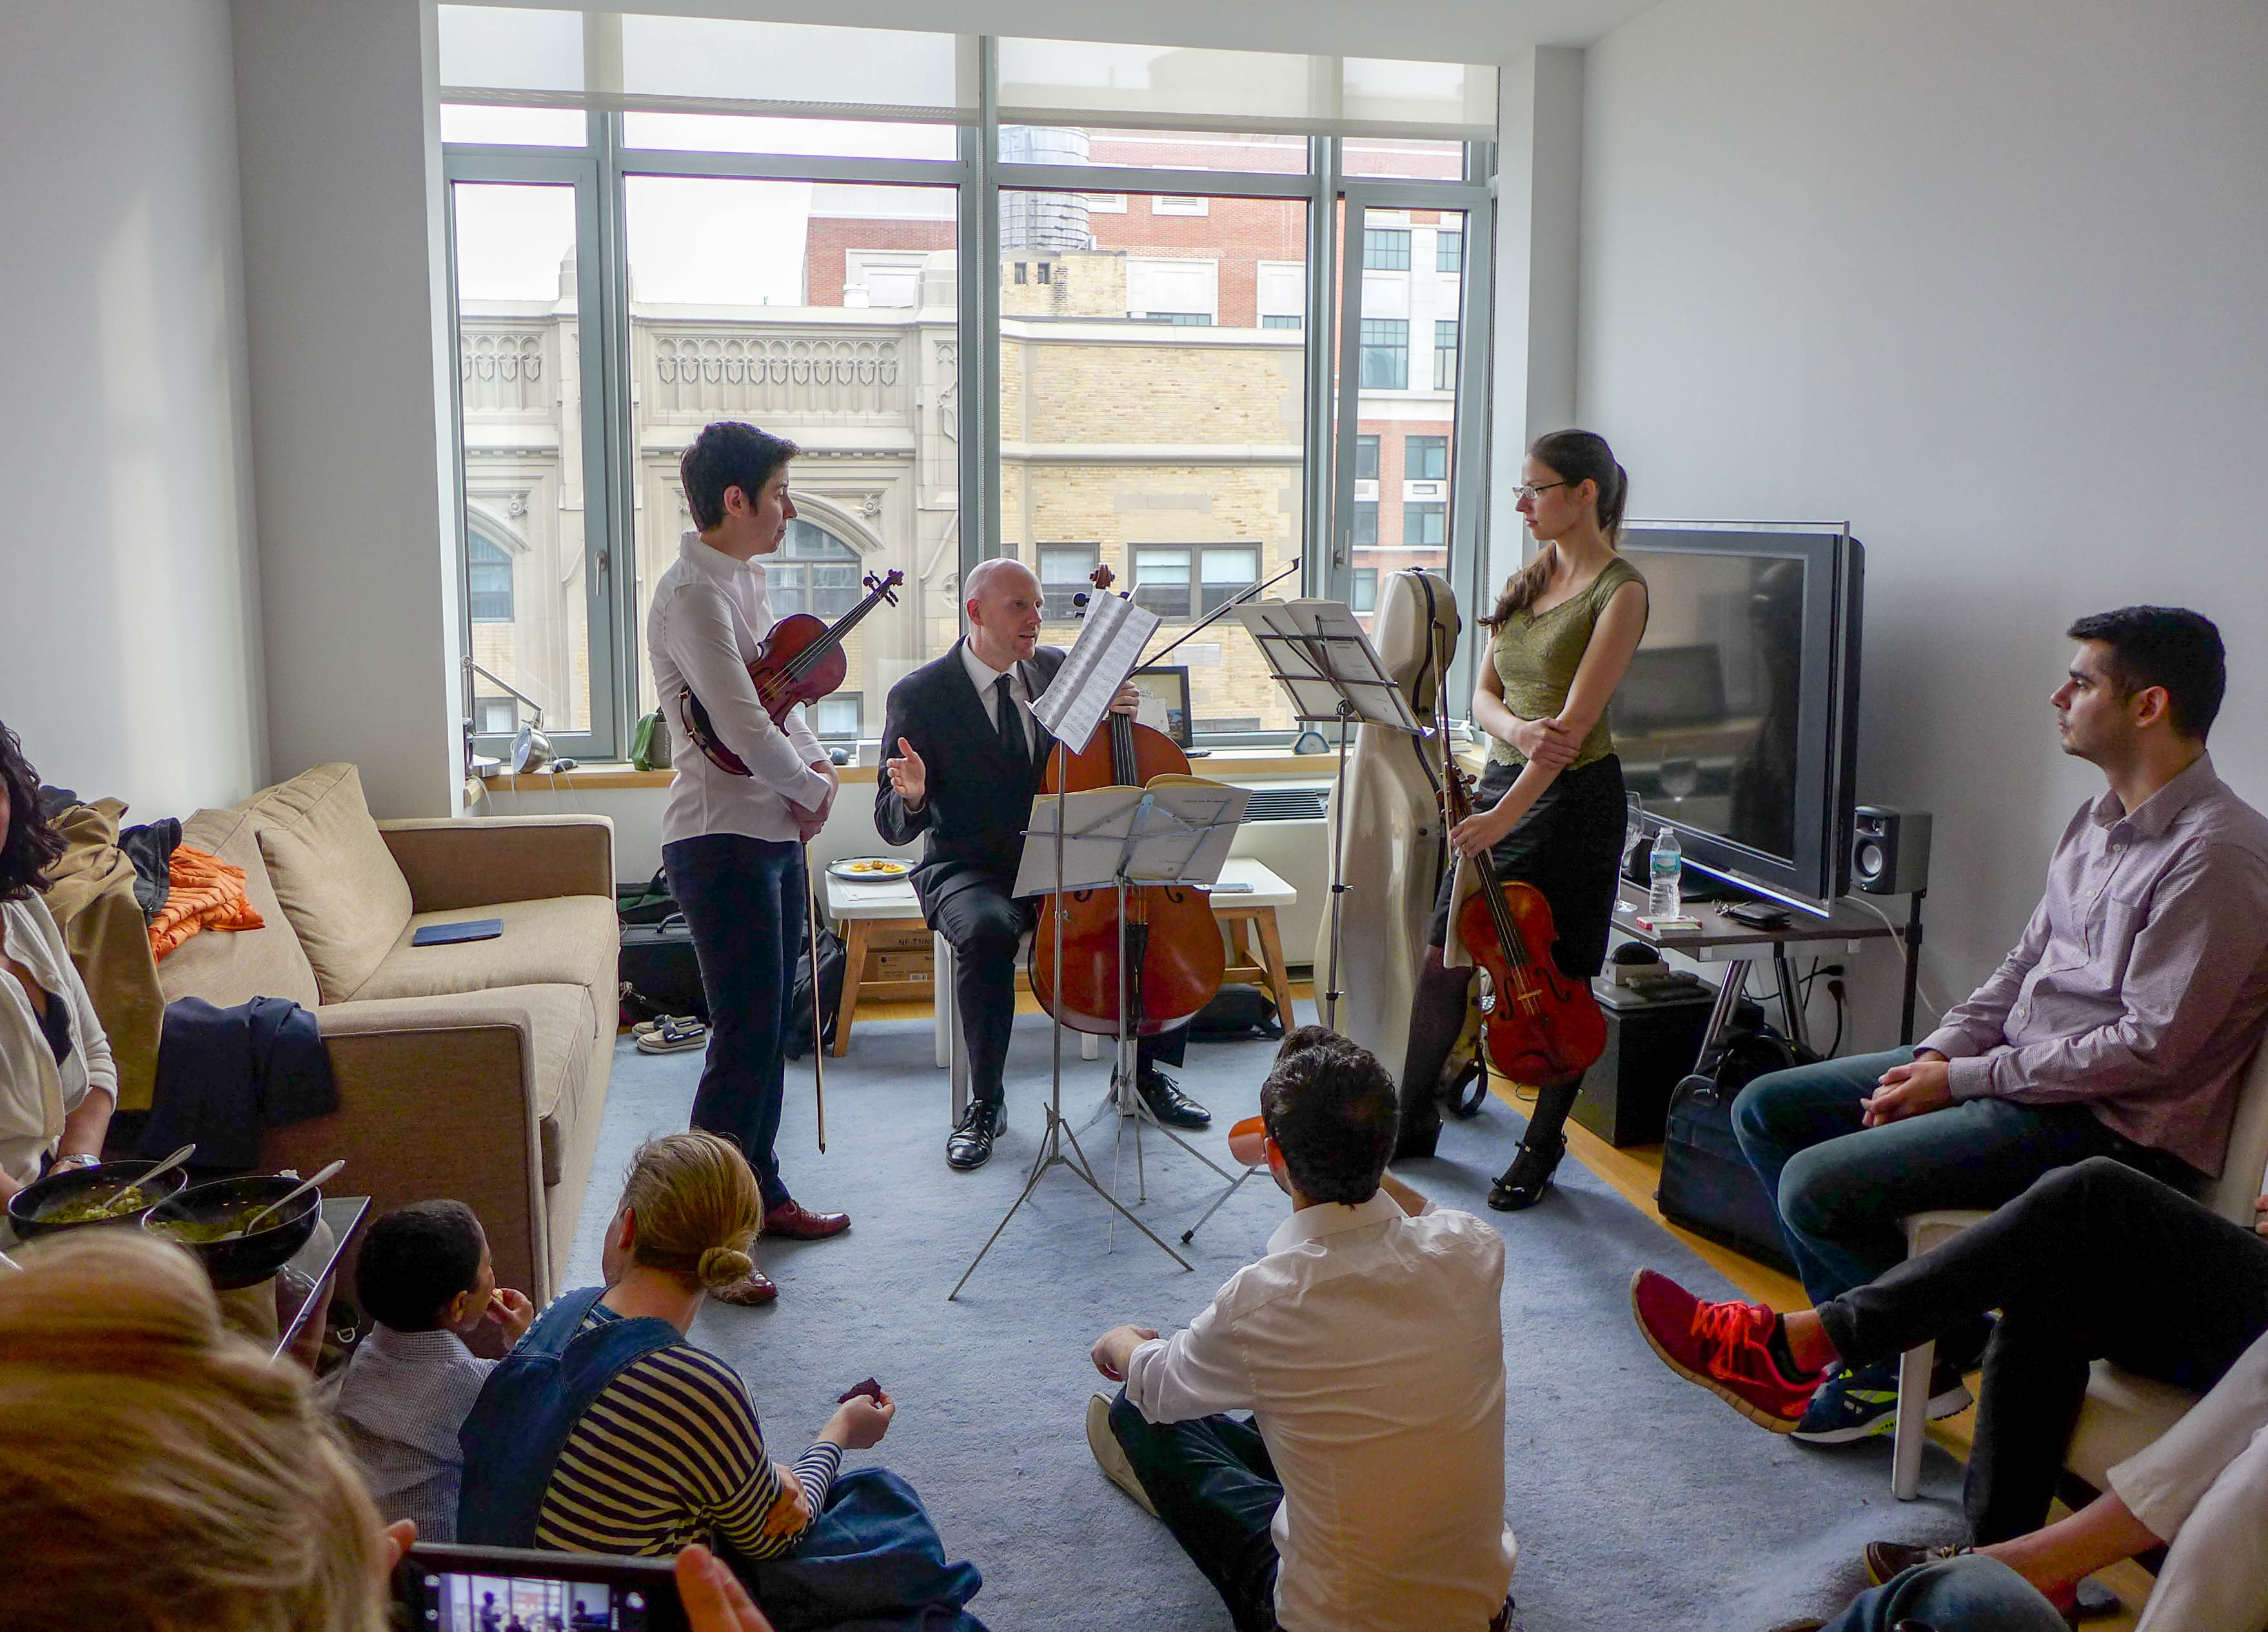 Watched A Living Room Chamber Concert